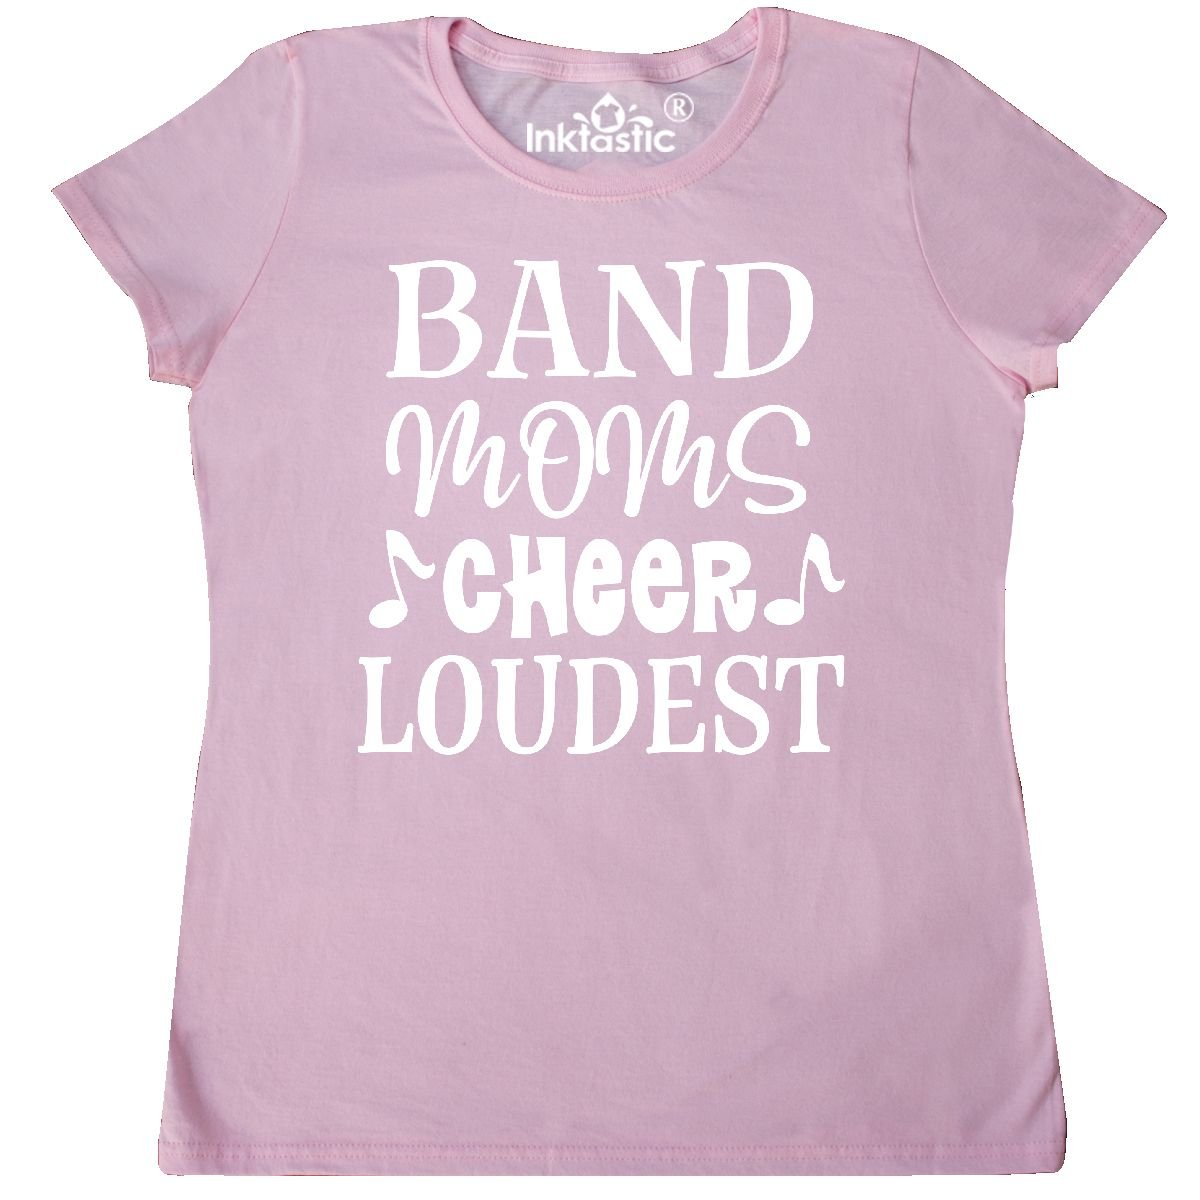 4d4aff7915 Amazon.com: inktastic - Marching Band Mom Funny Music Gift Women's T-Shirt  2c875: Clothing